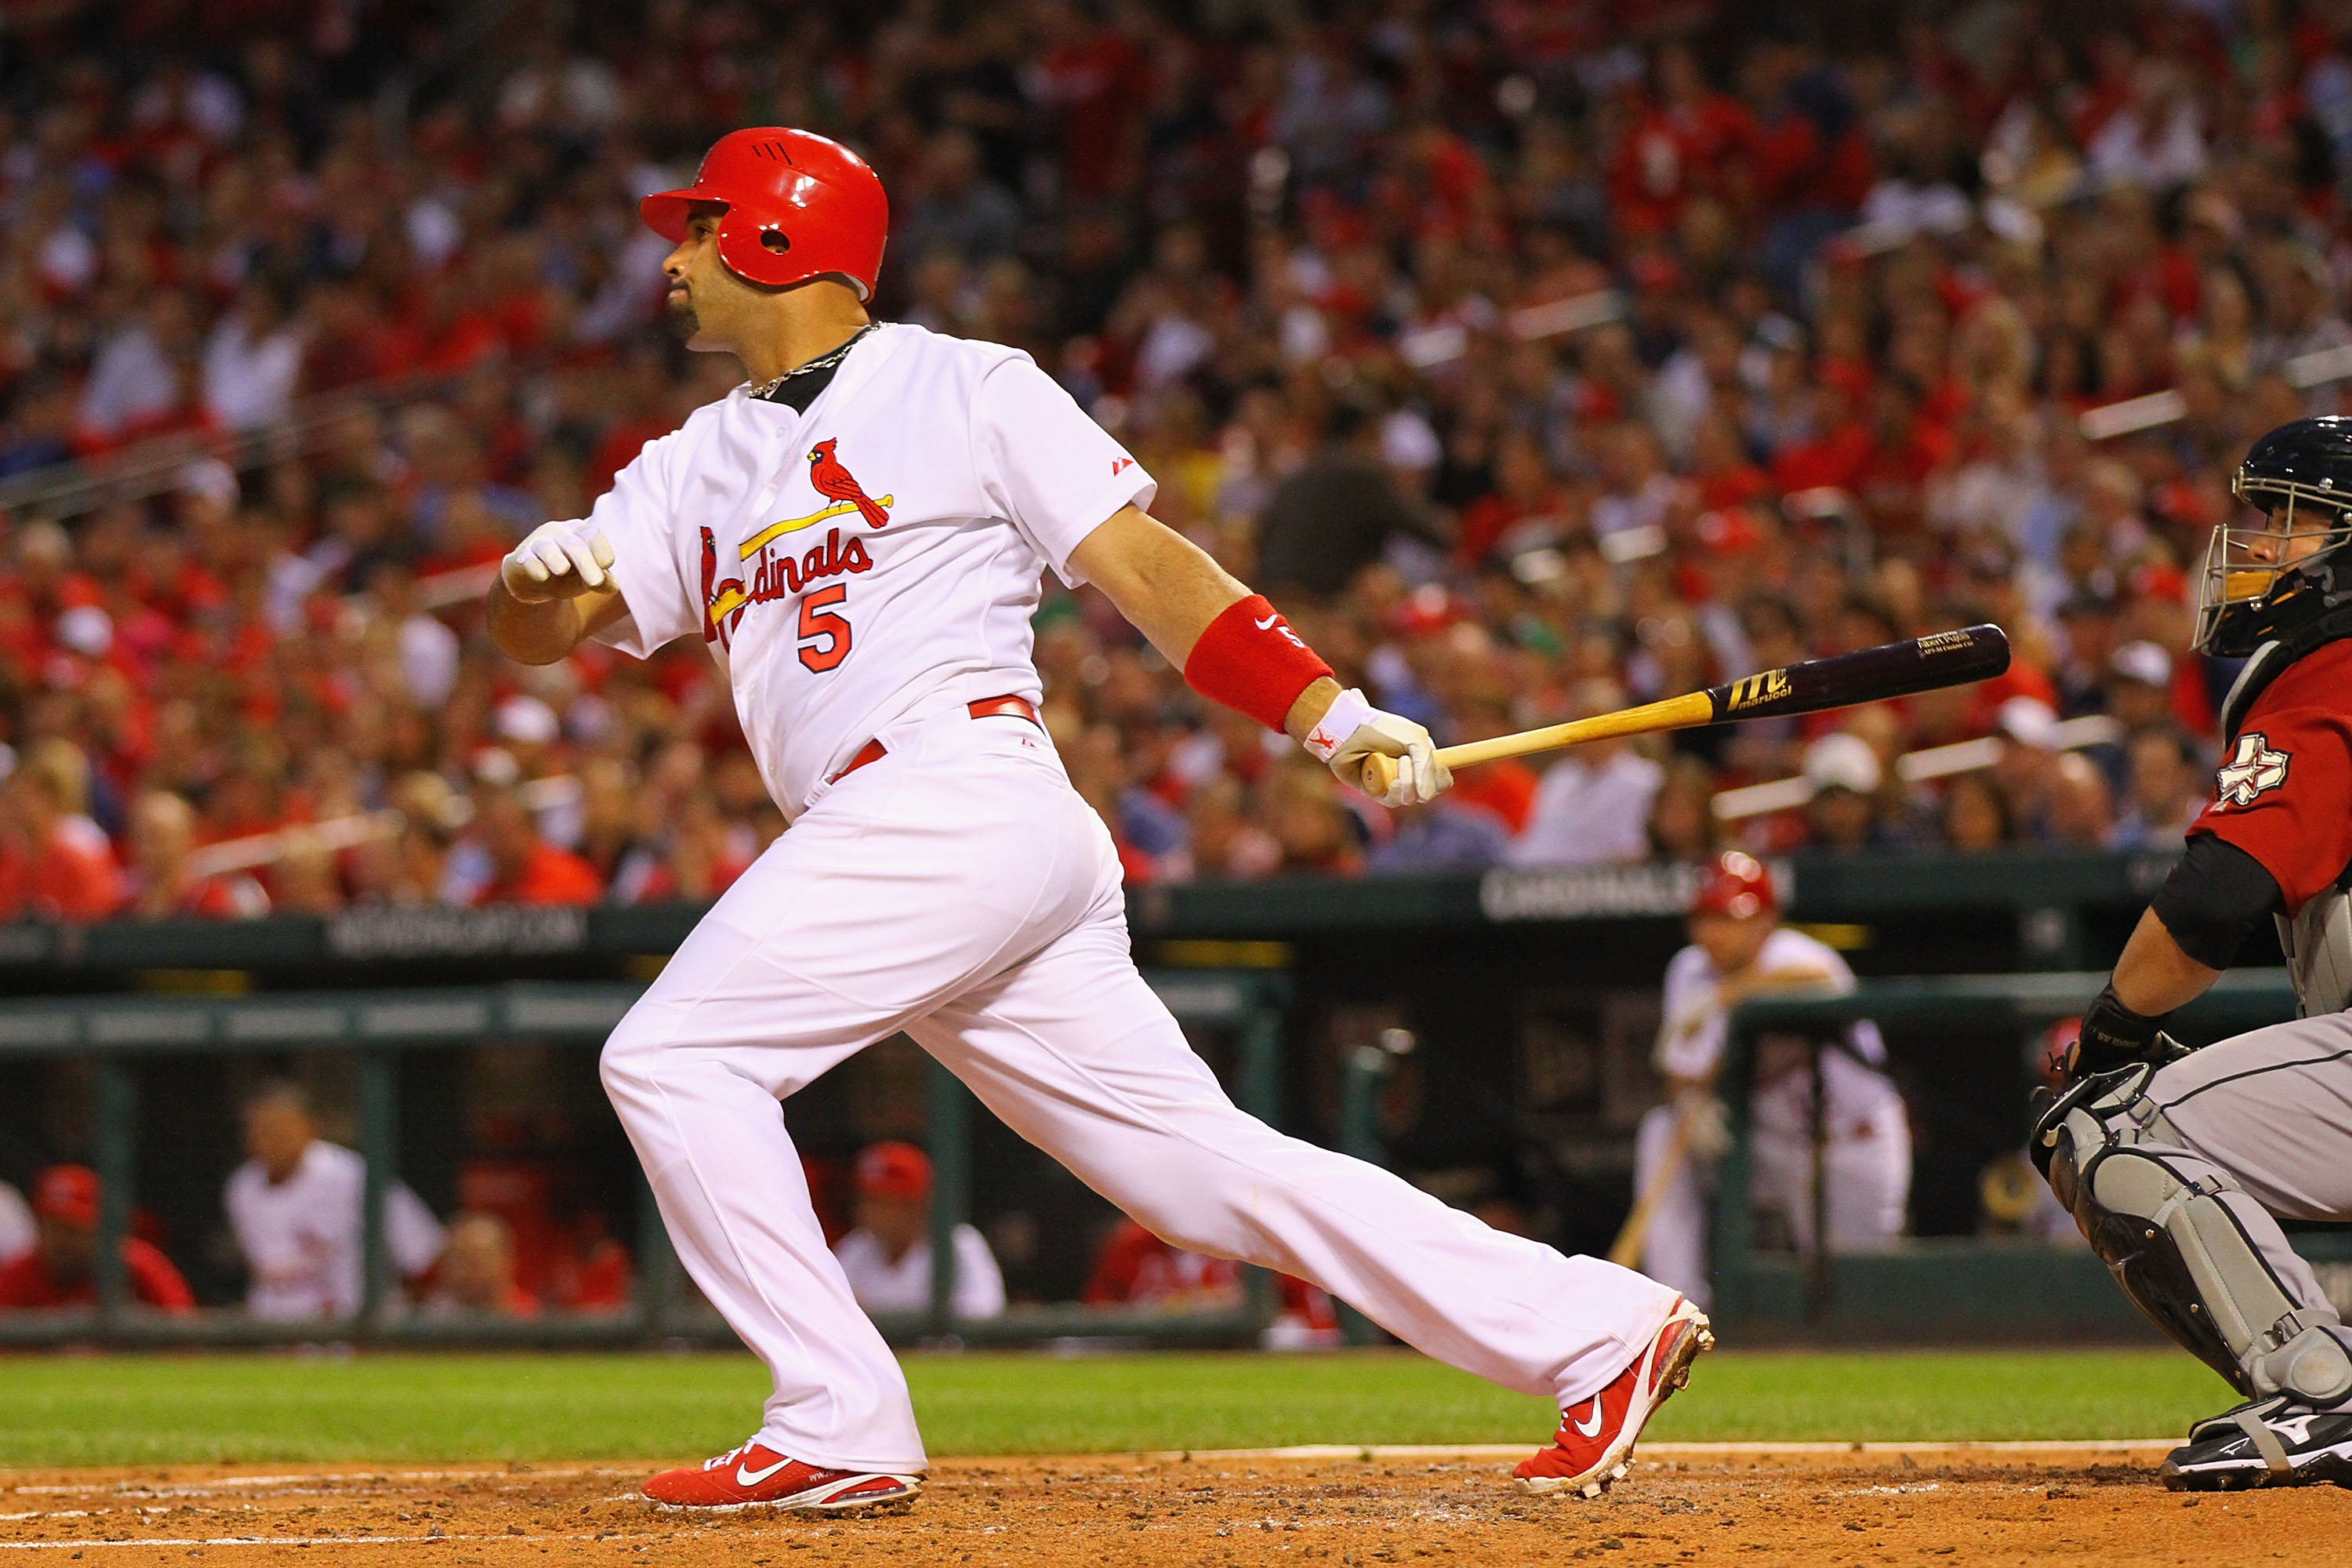 ST. LOUIS, MO - MAY 18: Albert Pujols #5 of the St.Louis Cardinals hits an RBI single against the Houston Astros at Busch Stadium on May 18, 2011 in St. Louis, Missouri.  (Photo by Dilip Vishwanat/Getty Images)